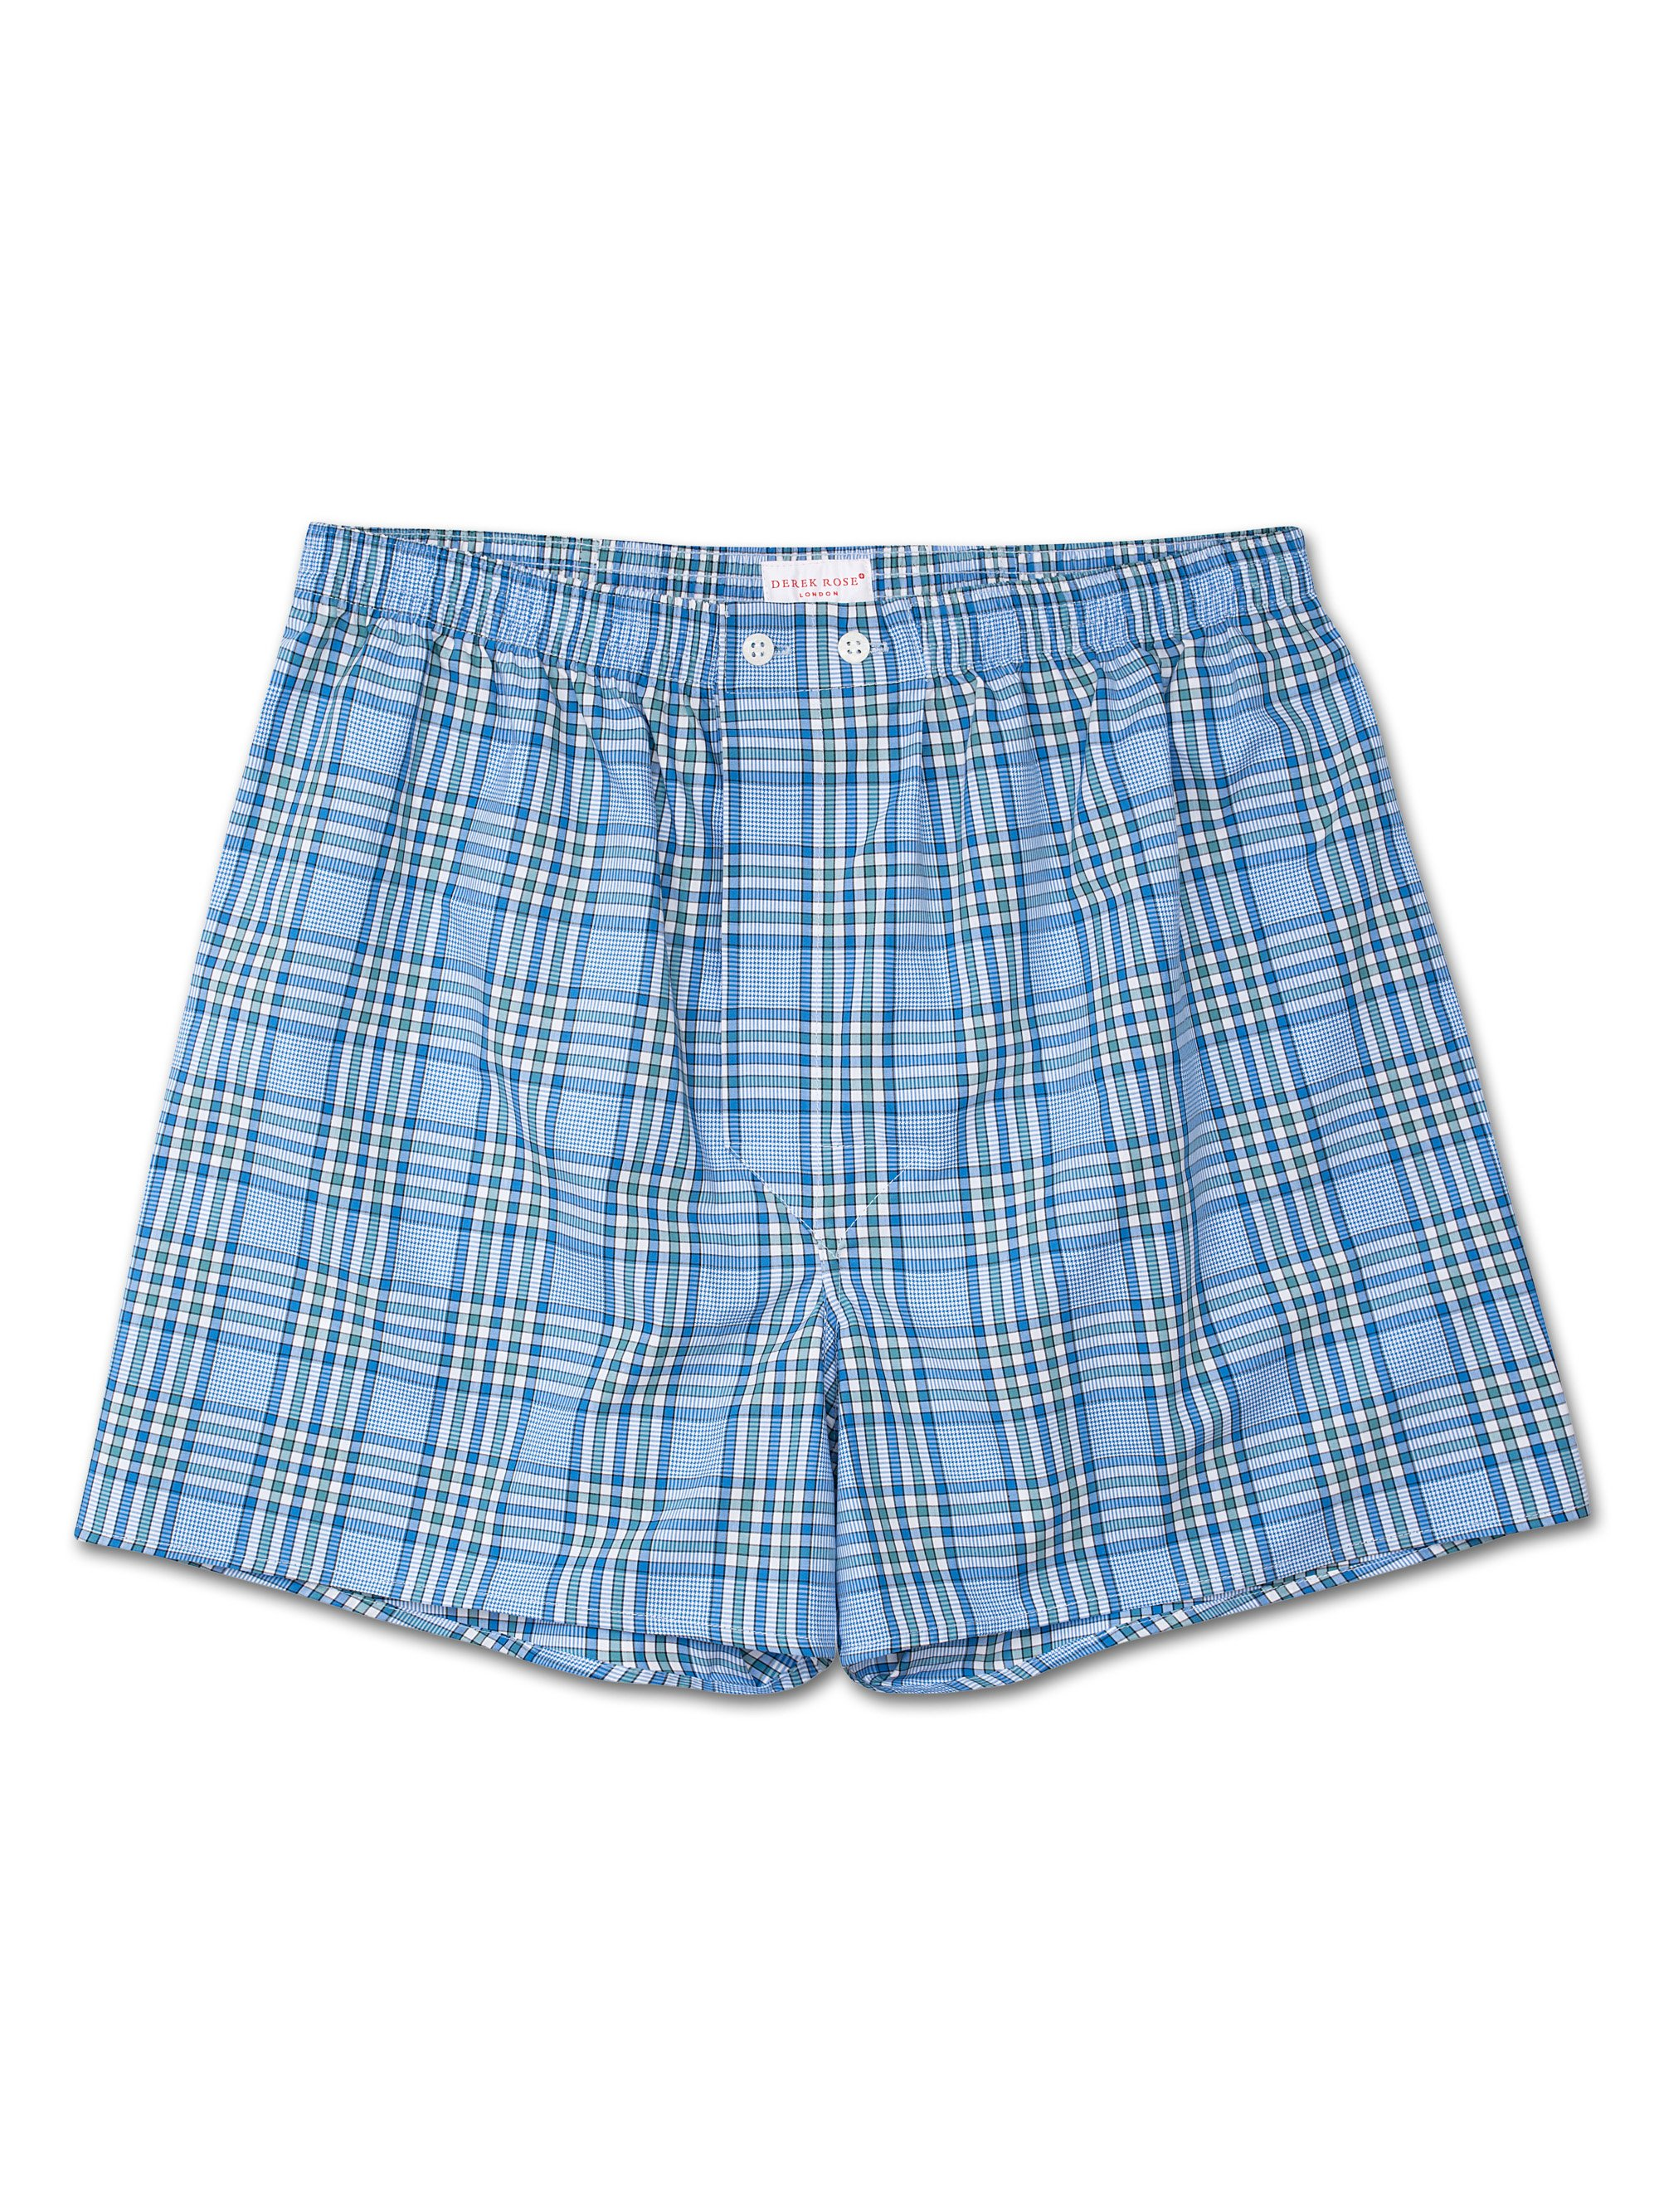 Men's Classic Fit Boxer Shorts Barker 7 Cotton Check Blue